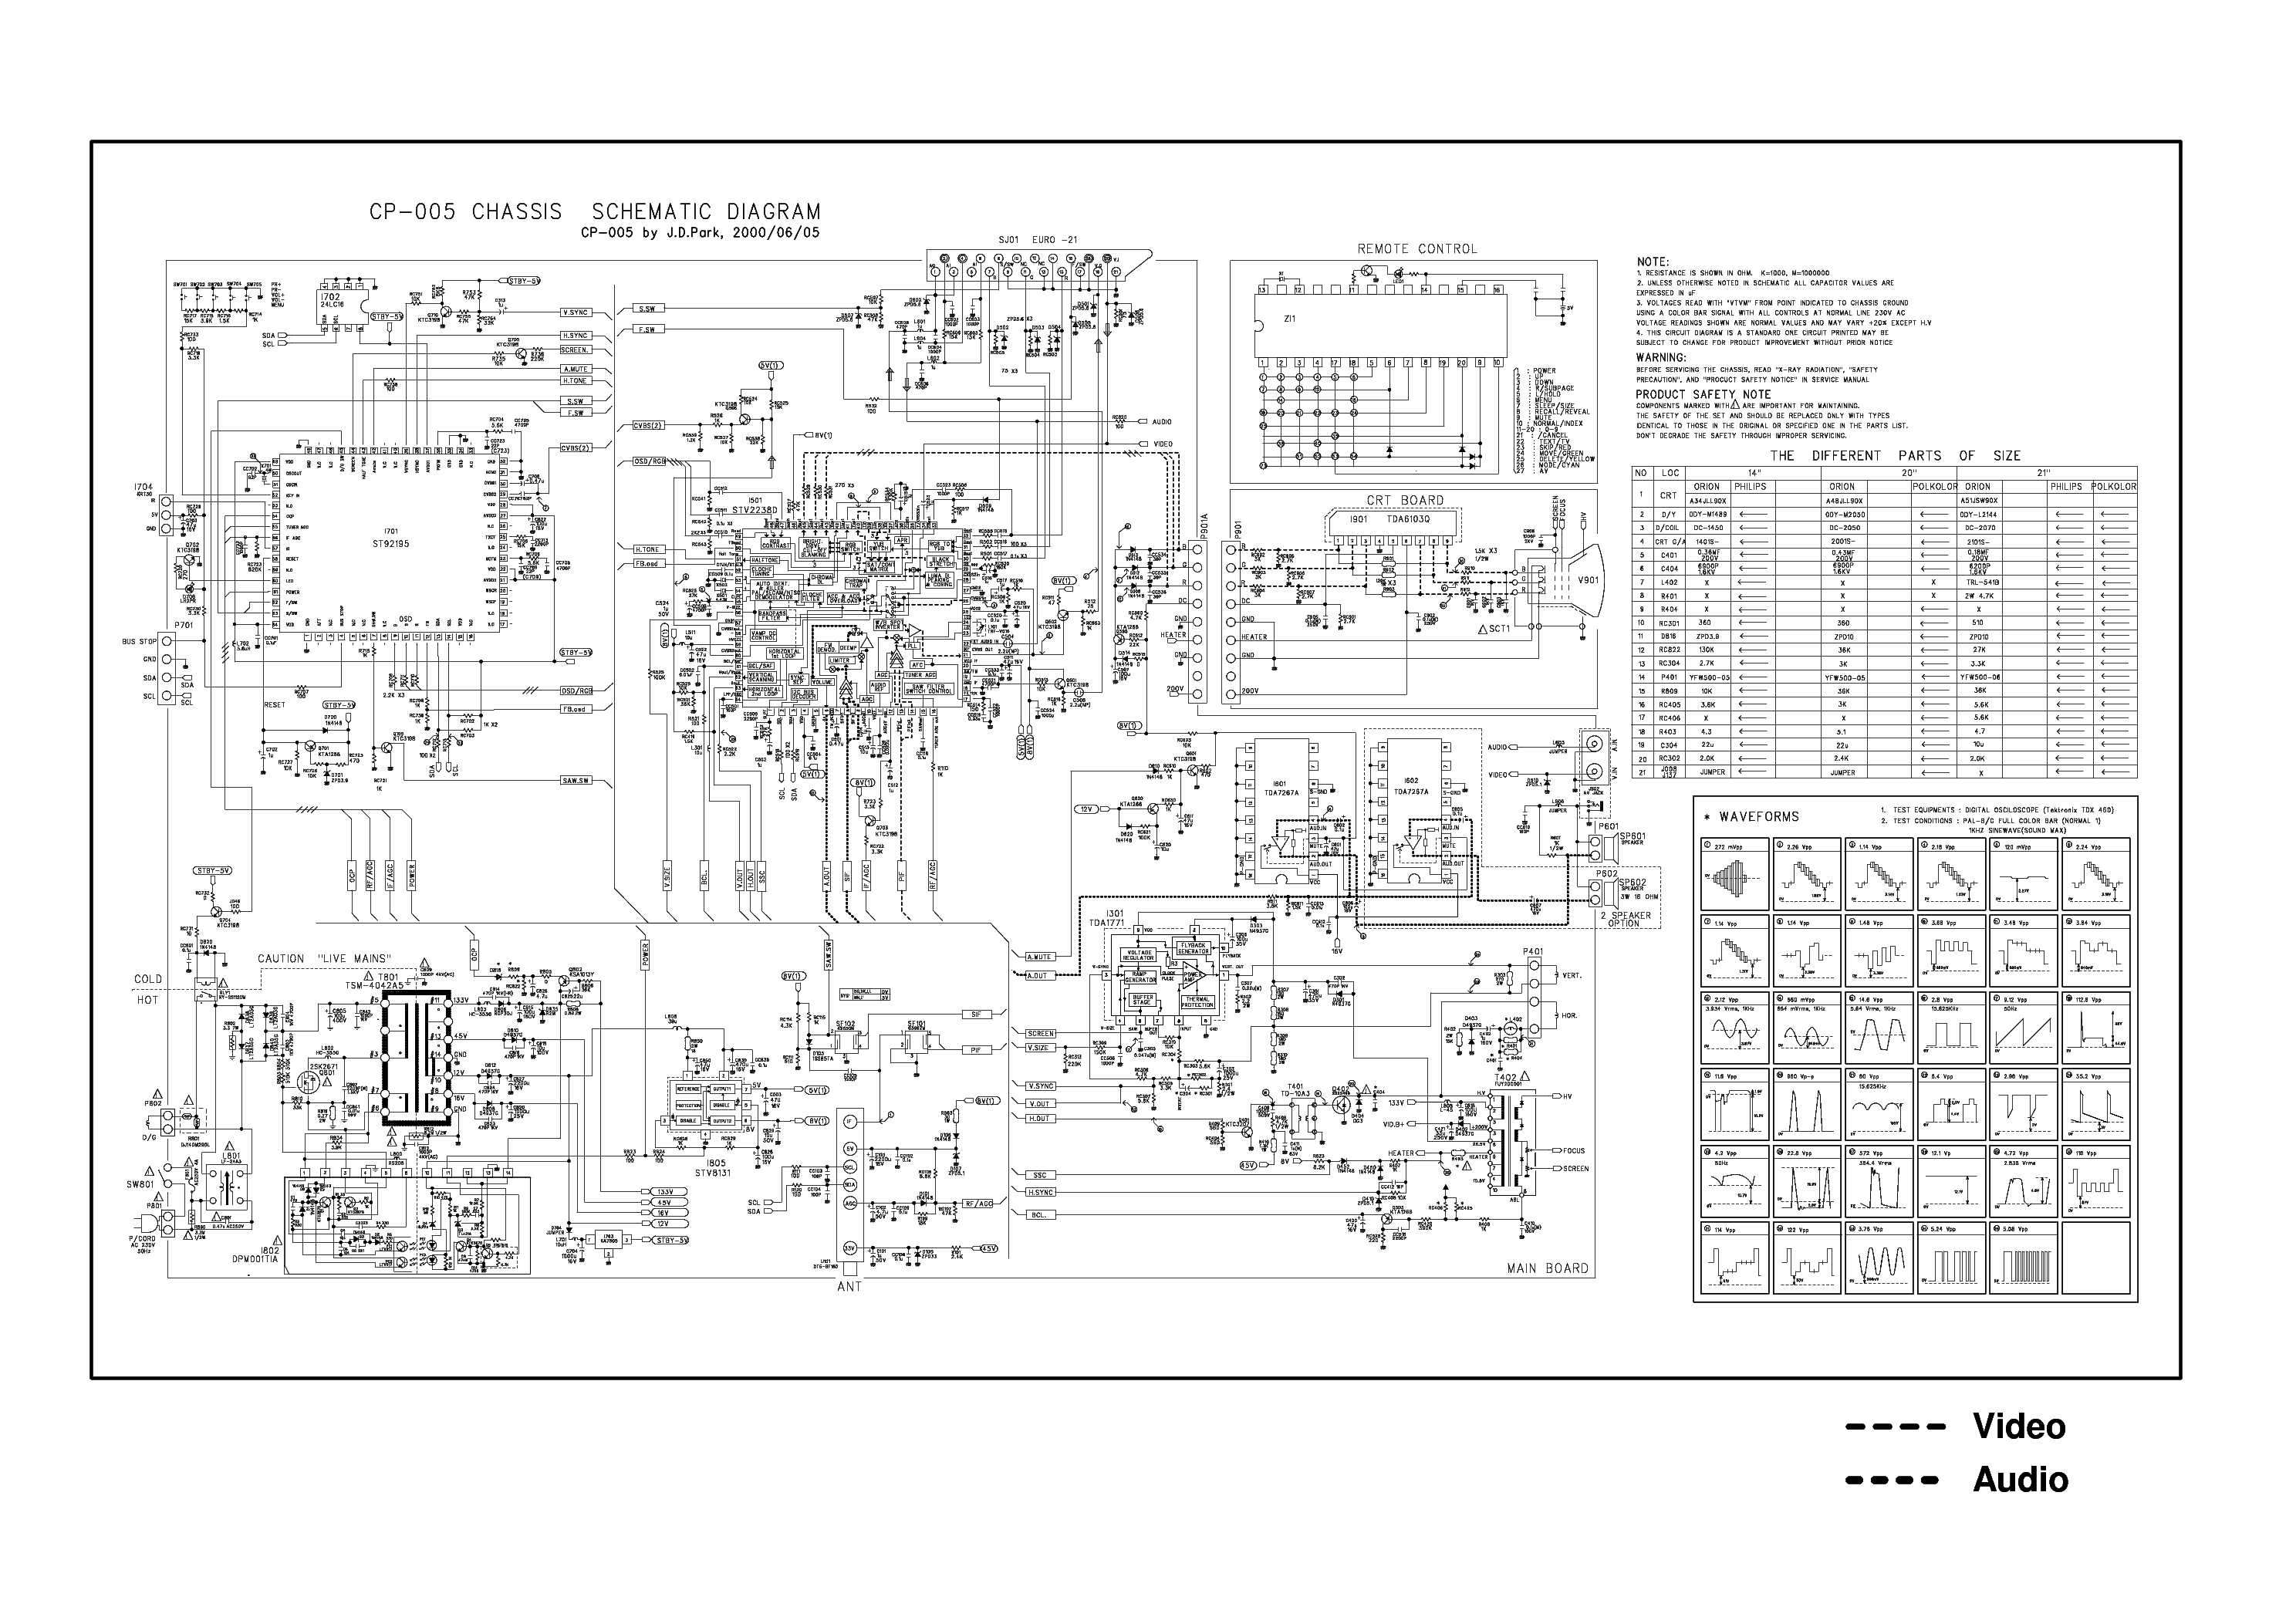 DAEWOO CP005RAJZ Service Manual download, schematics, eeprom, repair info for electronics experts